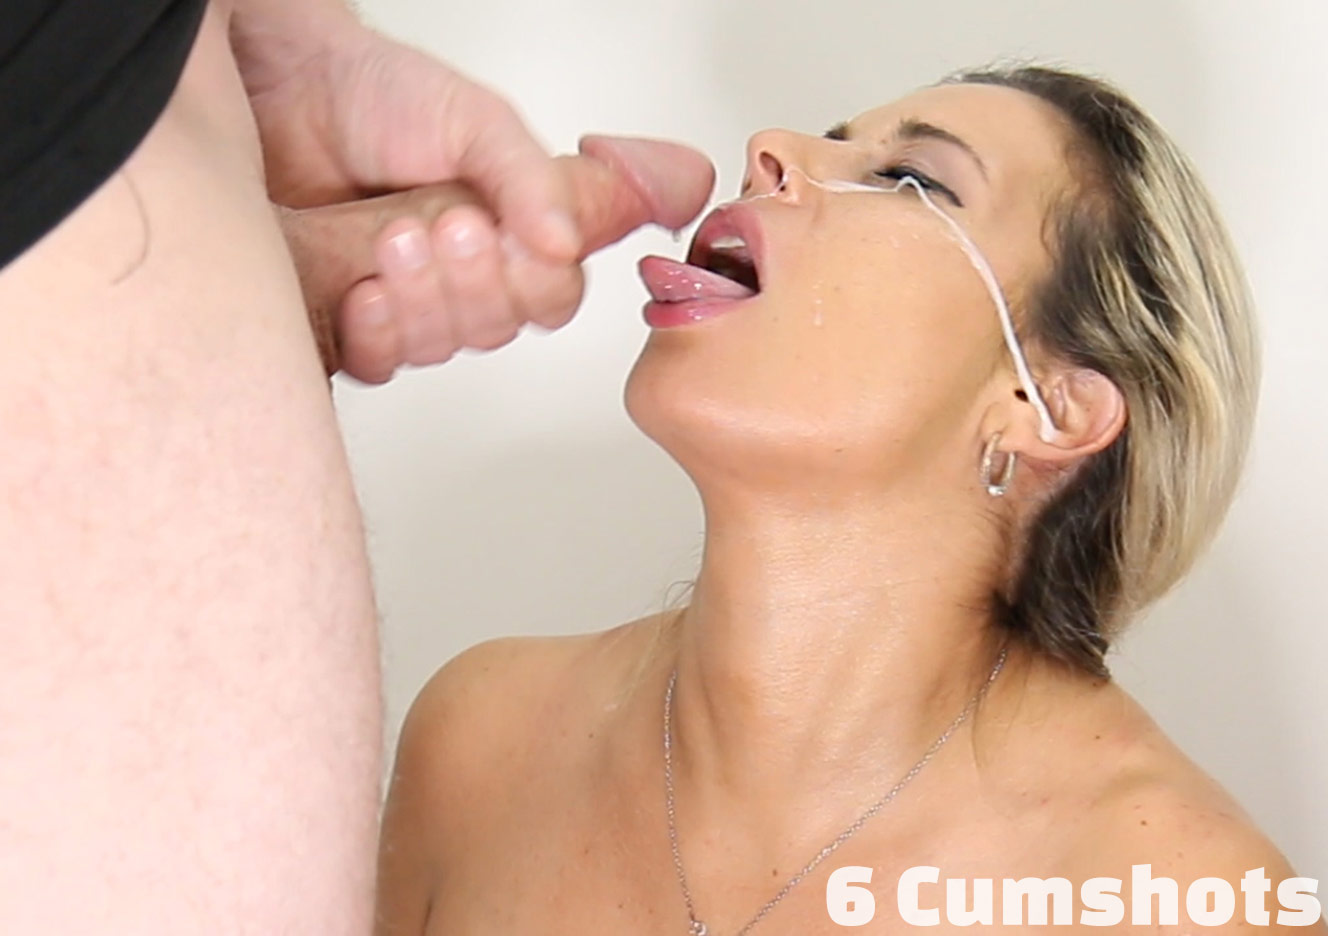 Cfnm blowjob example is perfection